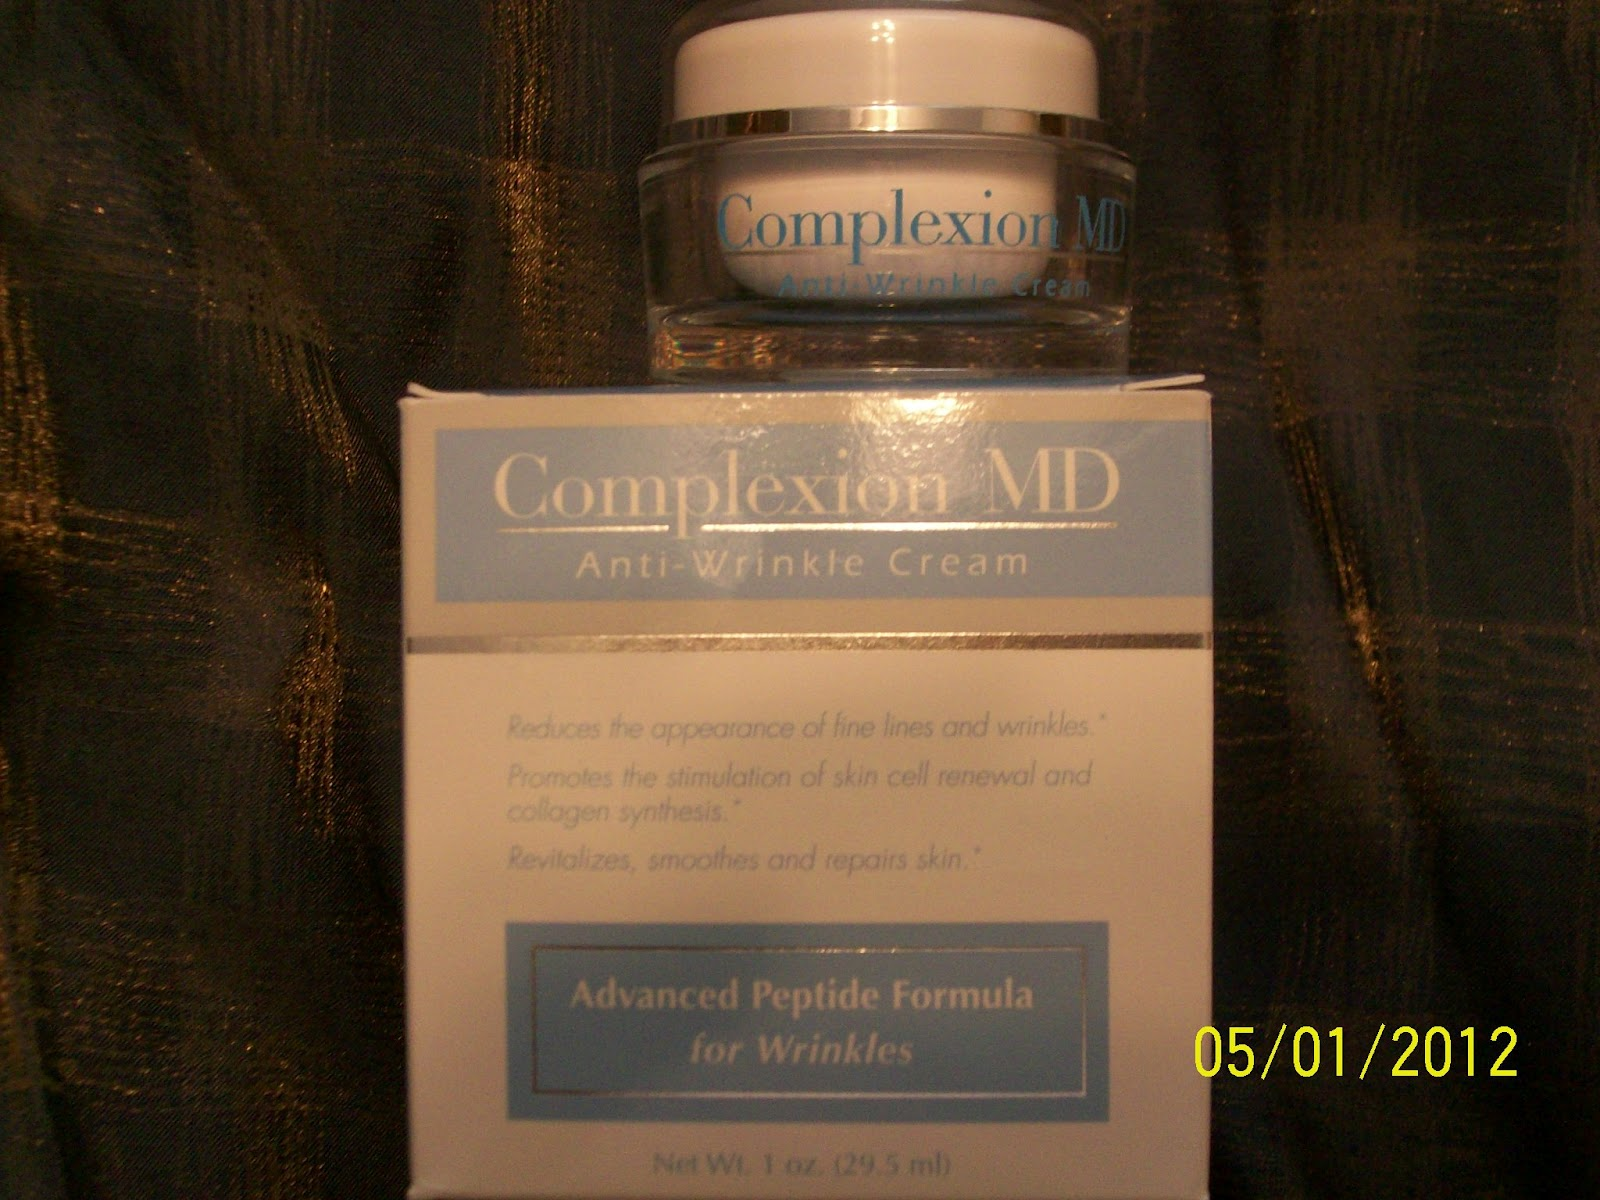 PRODUCT REVIEW: Complexion MD Anti-Wrinkle Cream